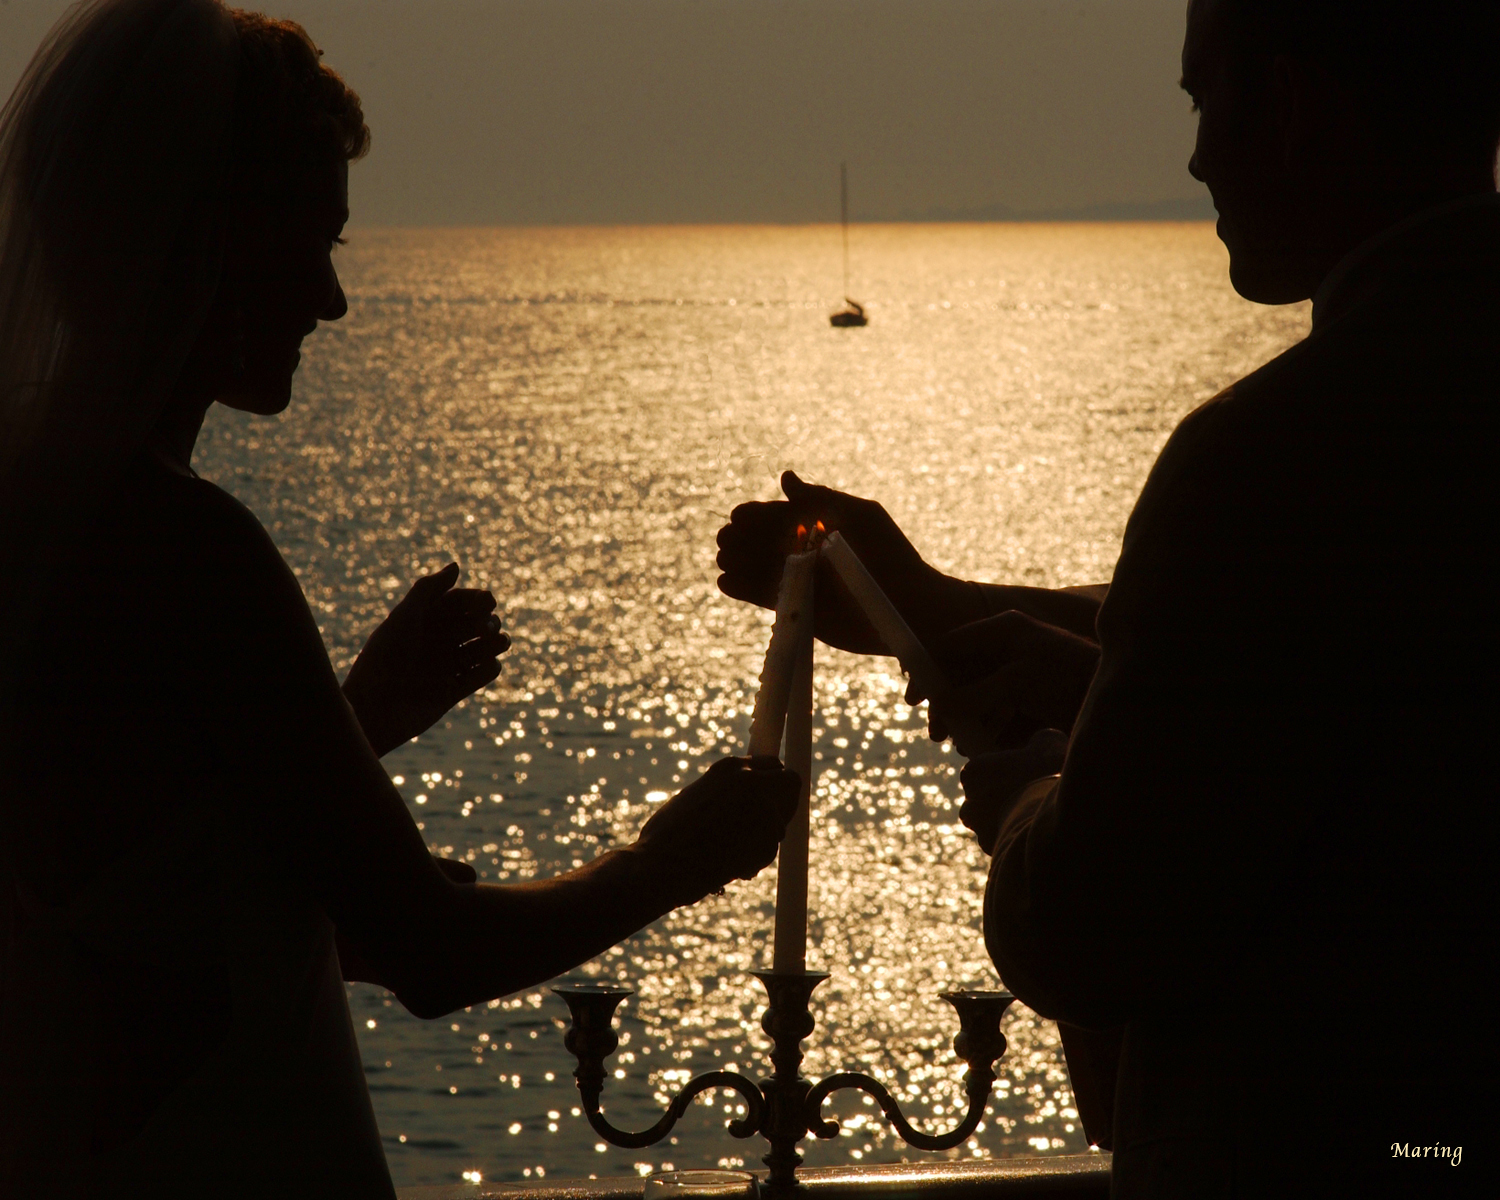 Silhouettes, candlight, and a sunset all gracing this beautiful ceremony, but also exposed for perfectly by photographer Charles Maring. No Photoshop is needed when you have a photographer that sees the world in a spectacular light.